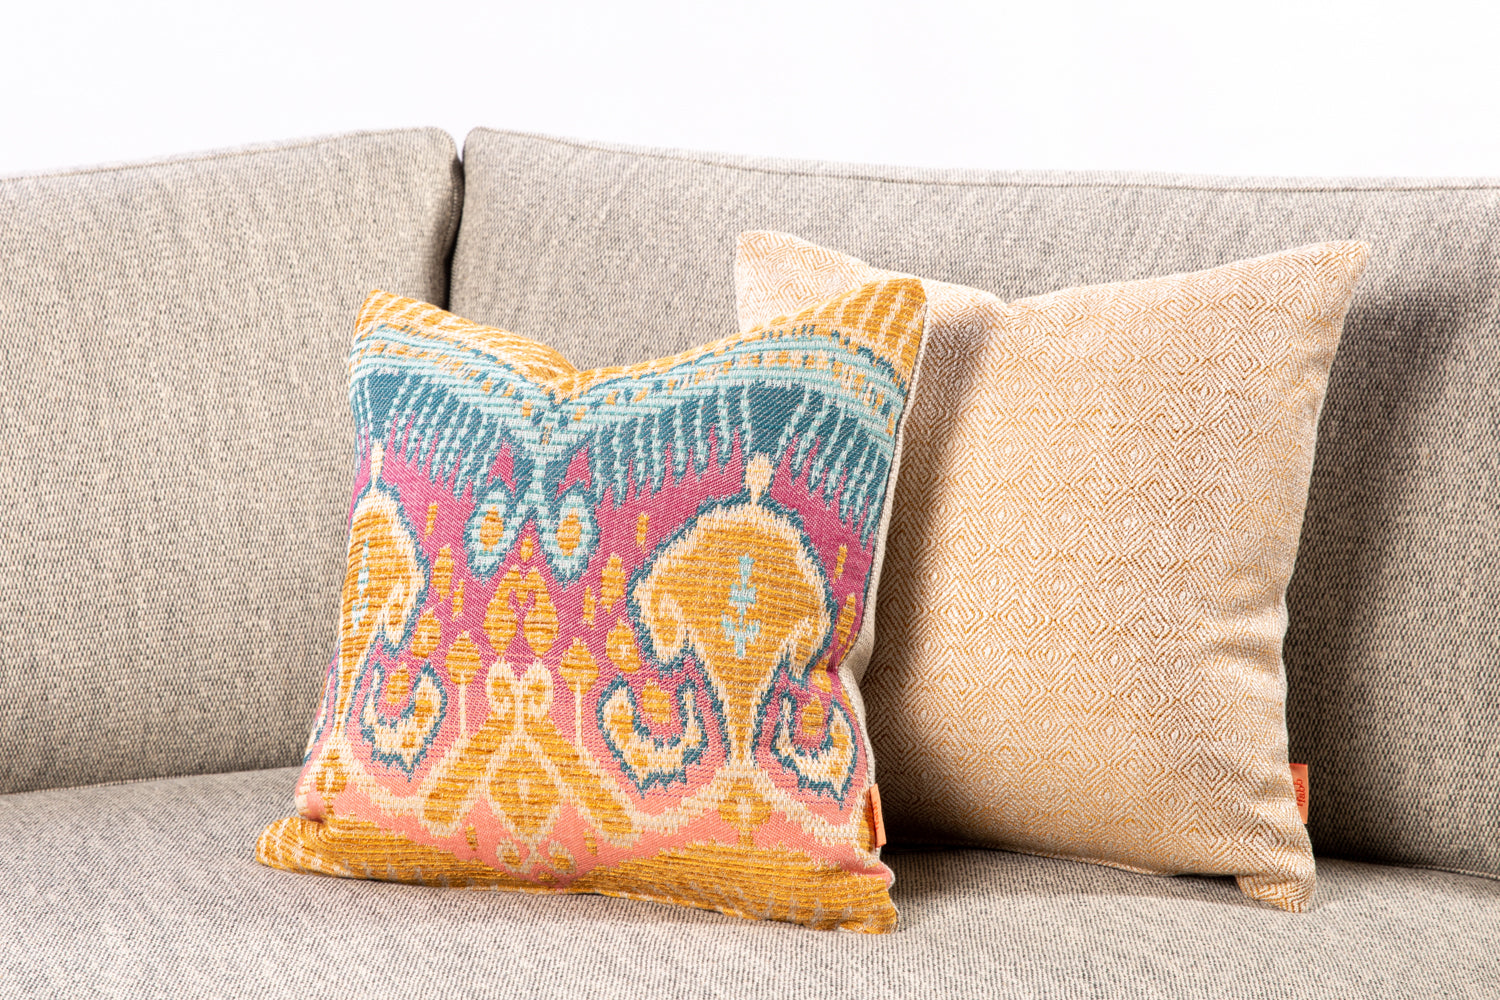 ffabb toss pillows, RADG fabrics boho print